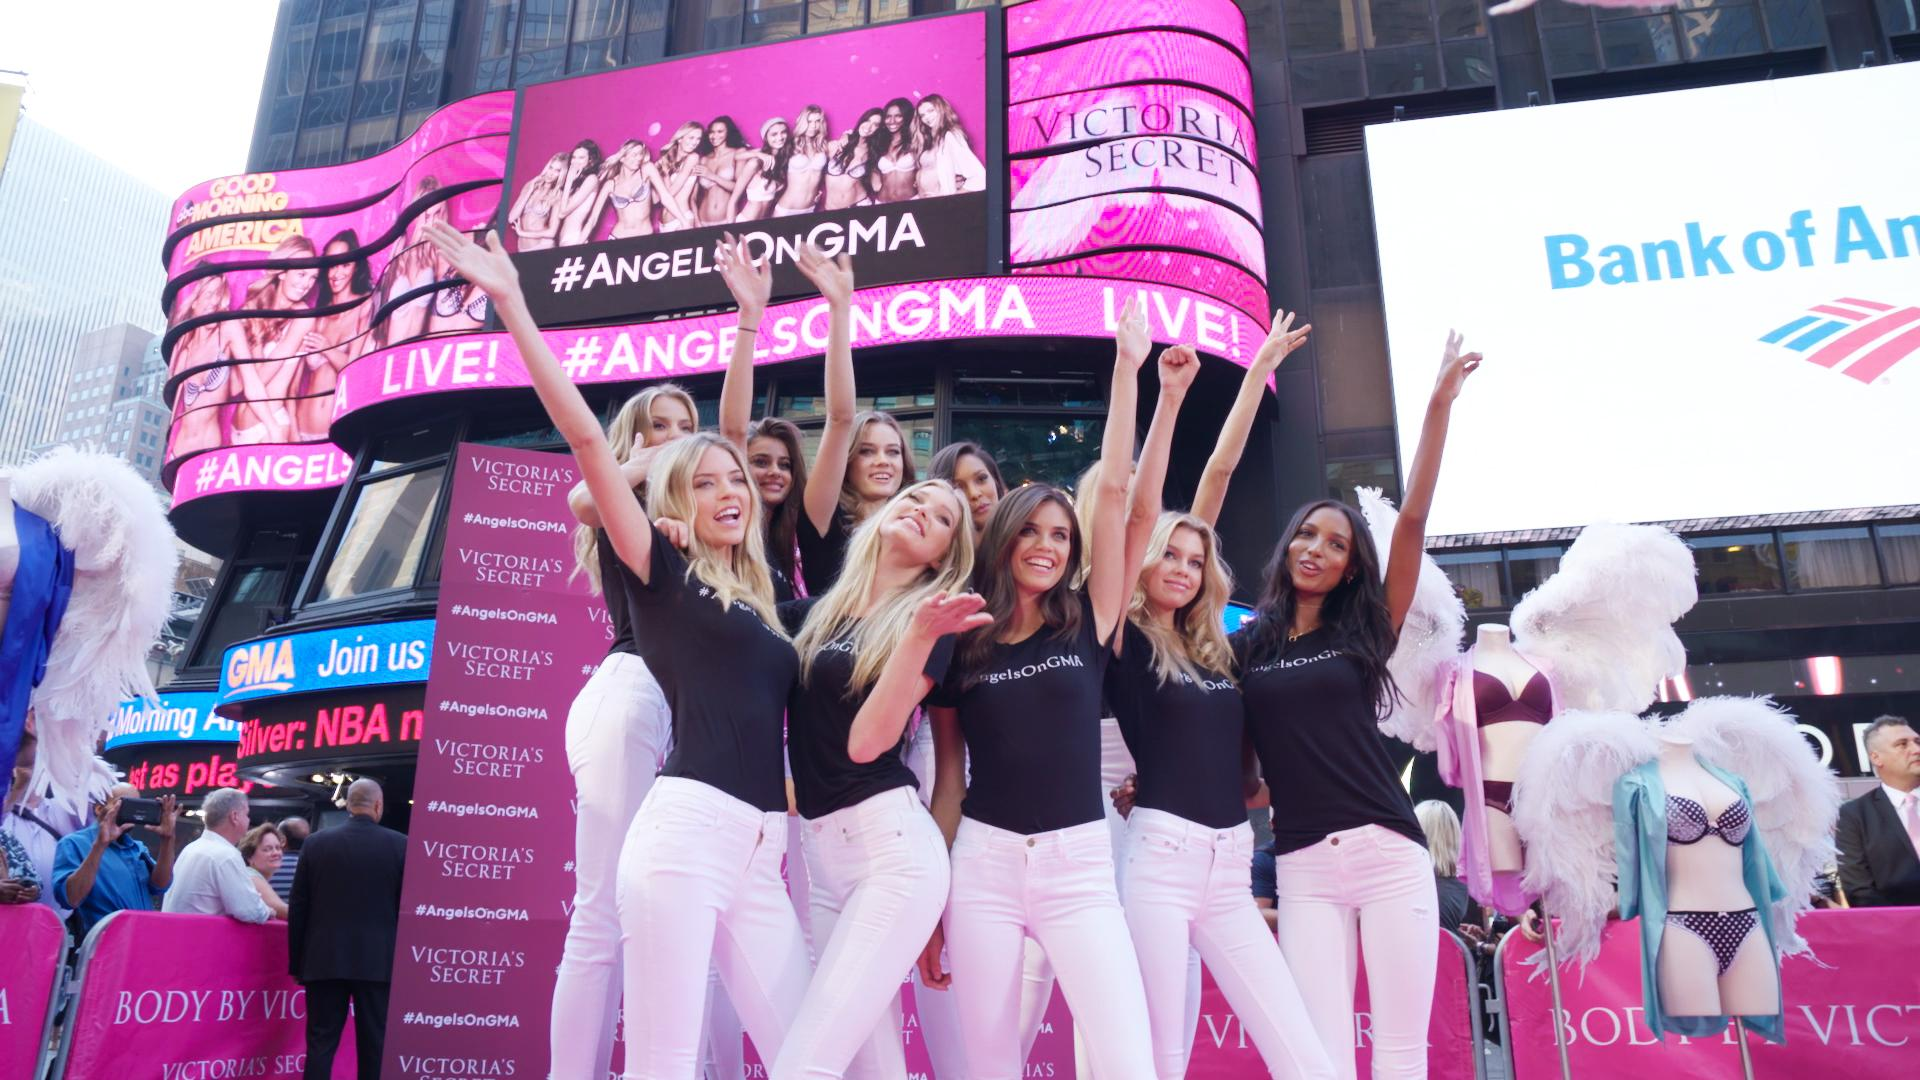 RT @madoffprod: Thrilled to have filmed the 10 new Victoria's Secret Angels! Congratulations ladies! @VictoriasSecret #TimesSquare http://t…